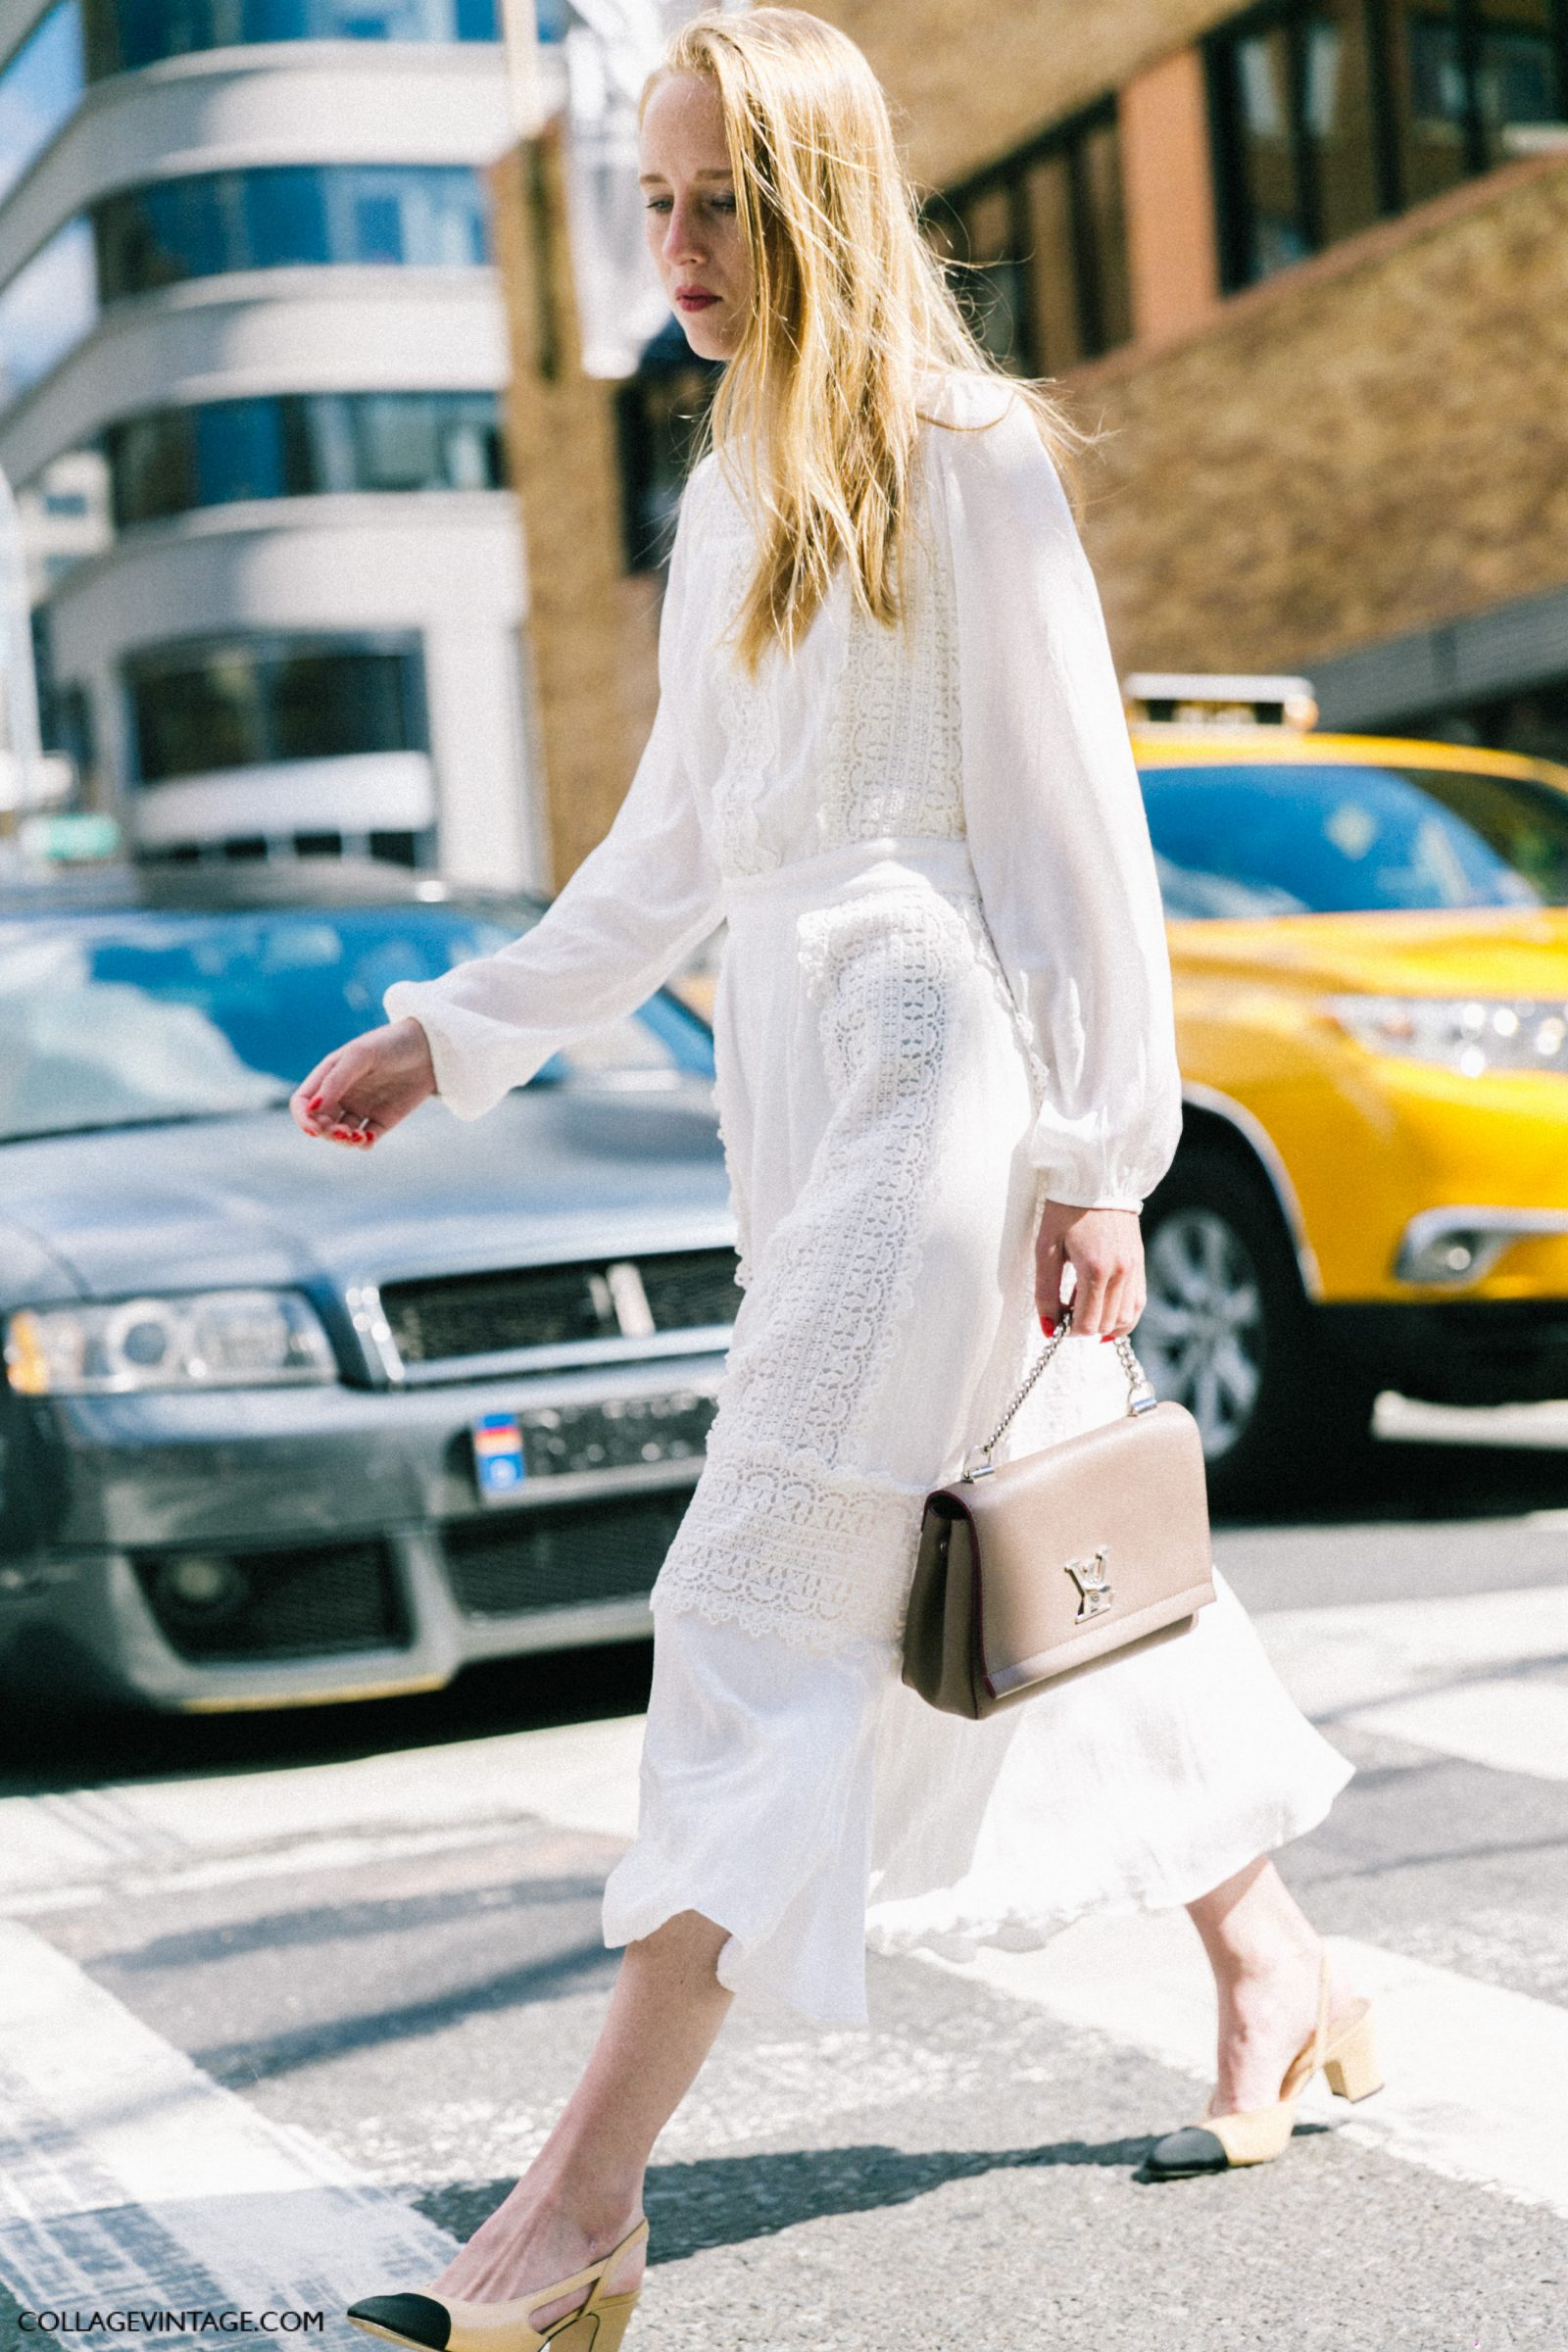 nyfw-new_york_fashion_week_ss17-street_style-outfits-collage_vintage-vintage-phillip_lim-the-row-proenza_schouler-rossie_aussolin-313